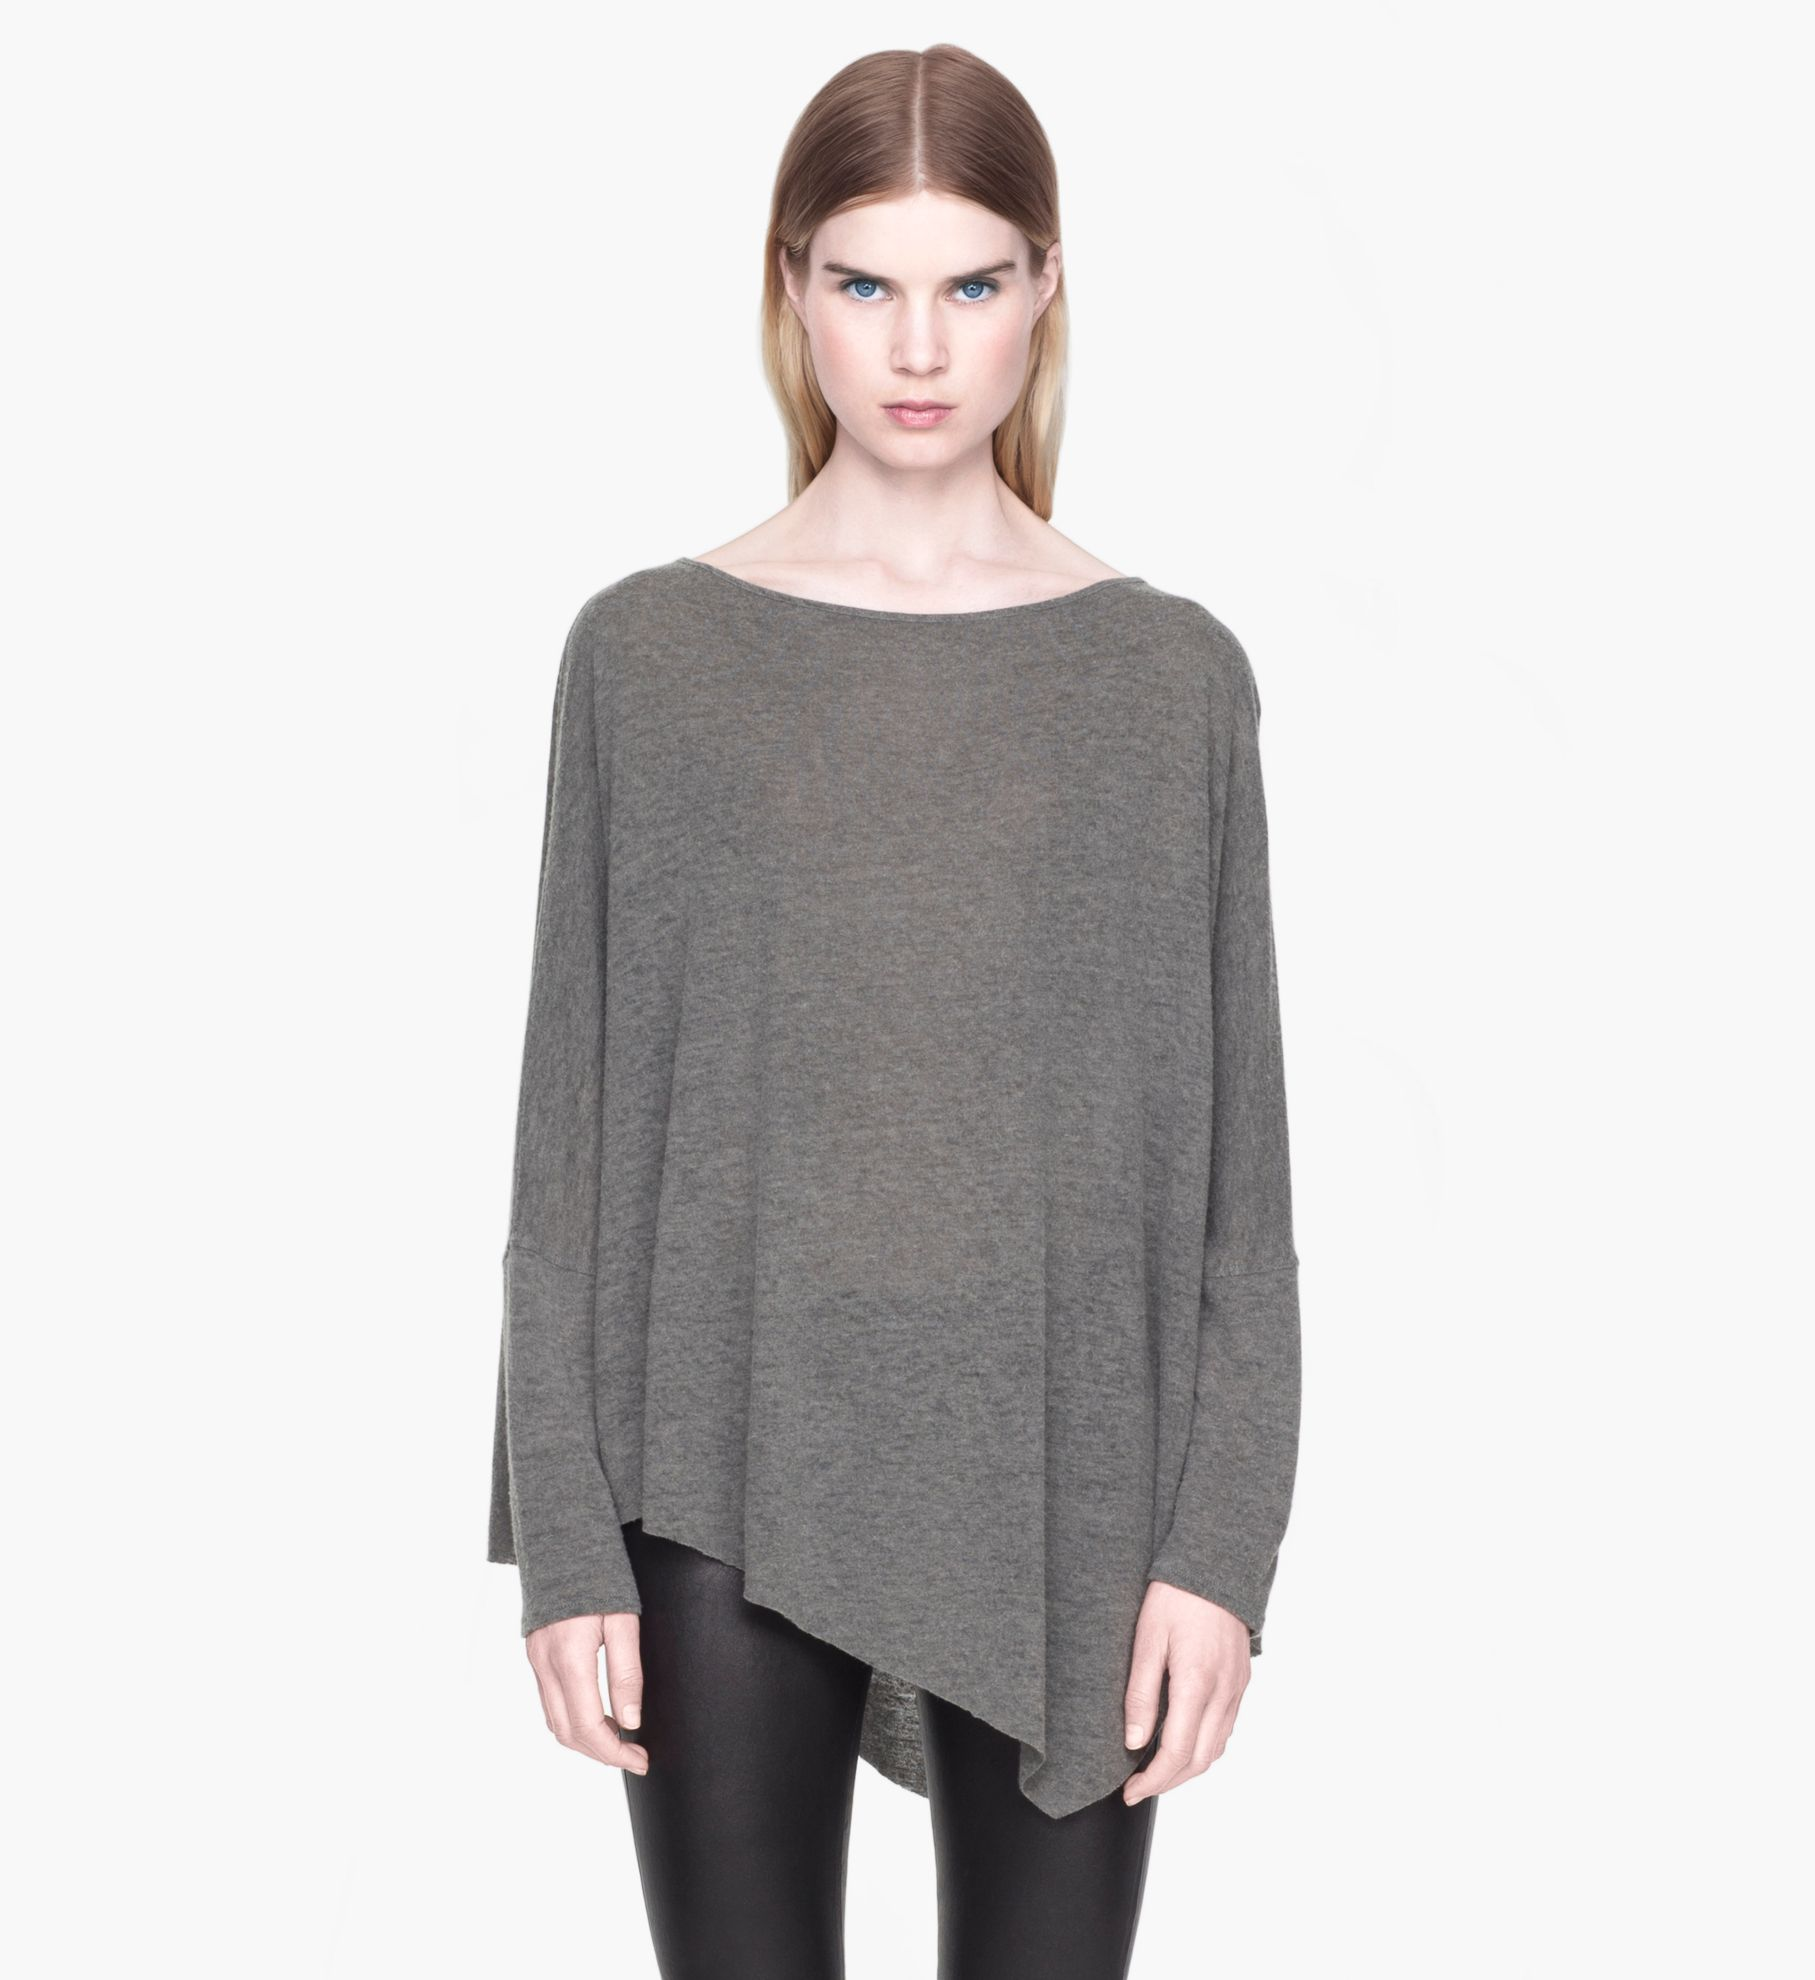 ANGORA COZY SWEATER